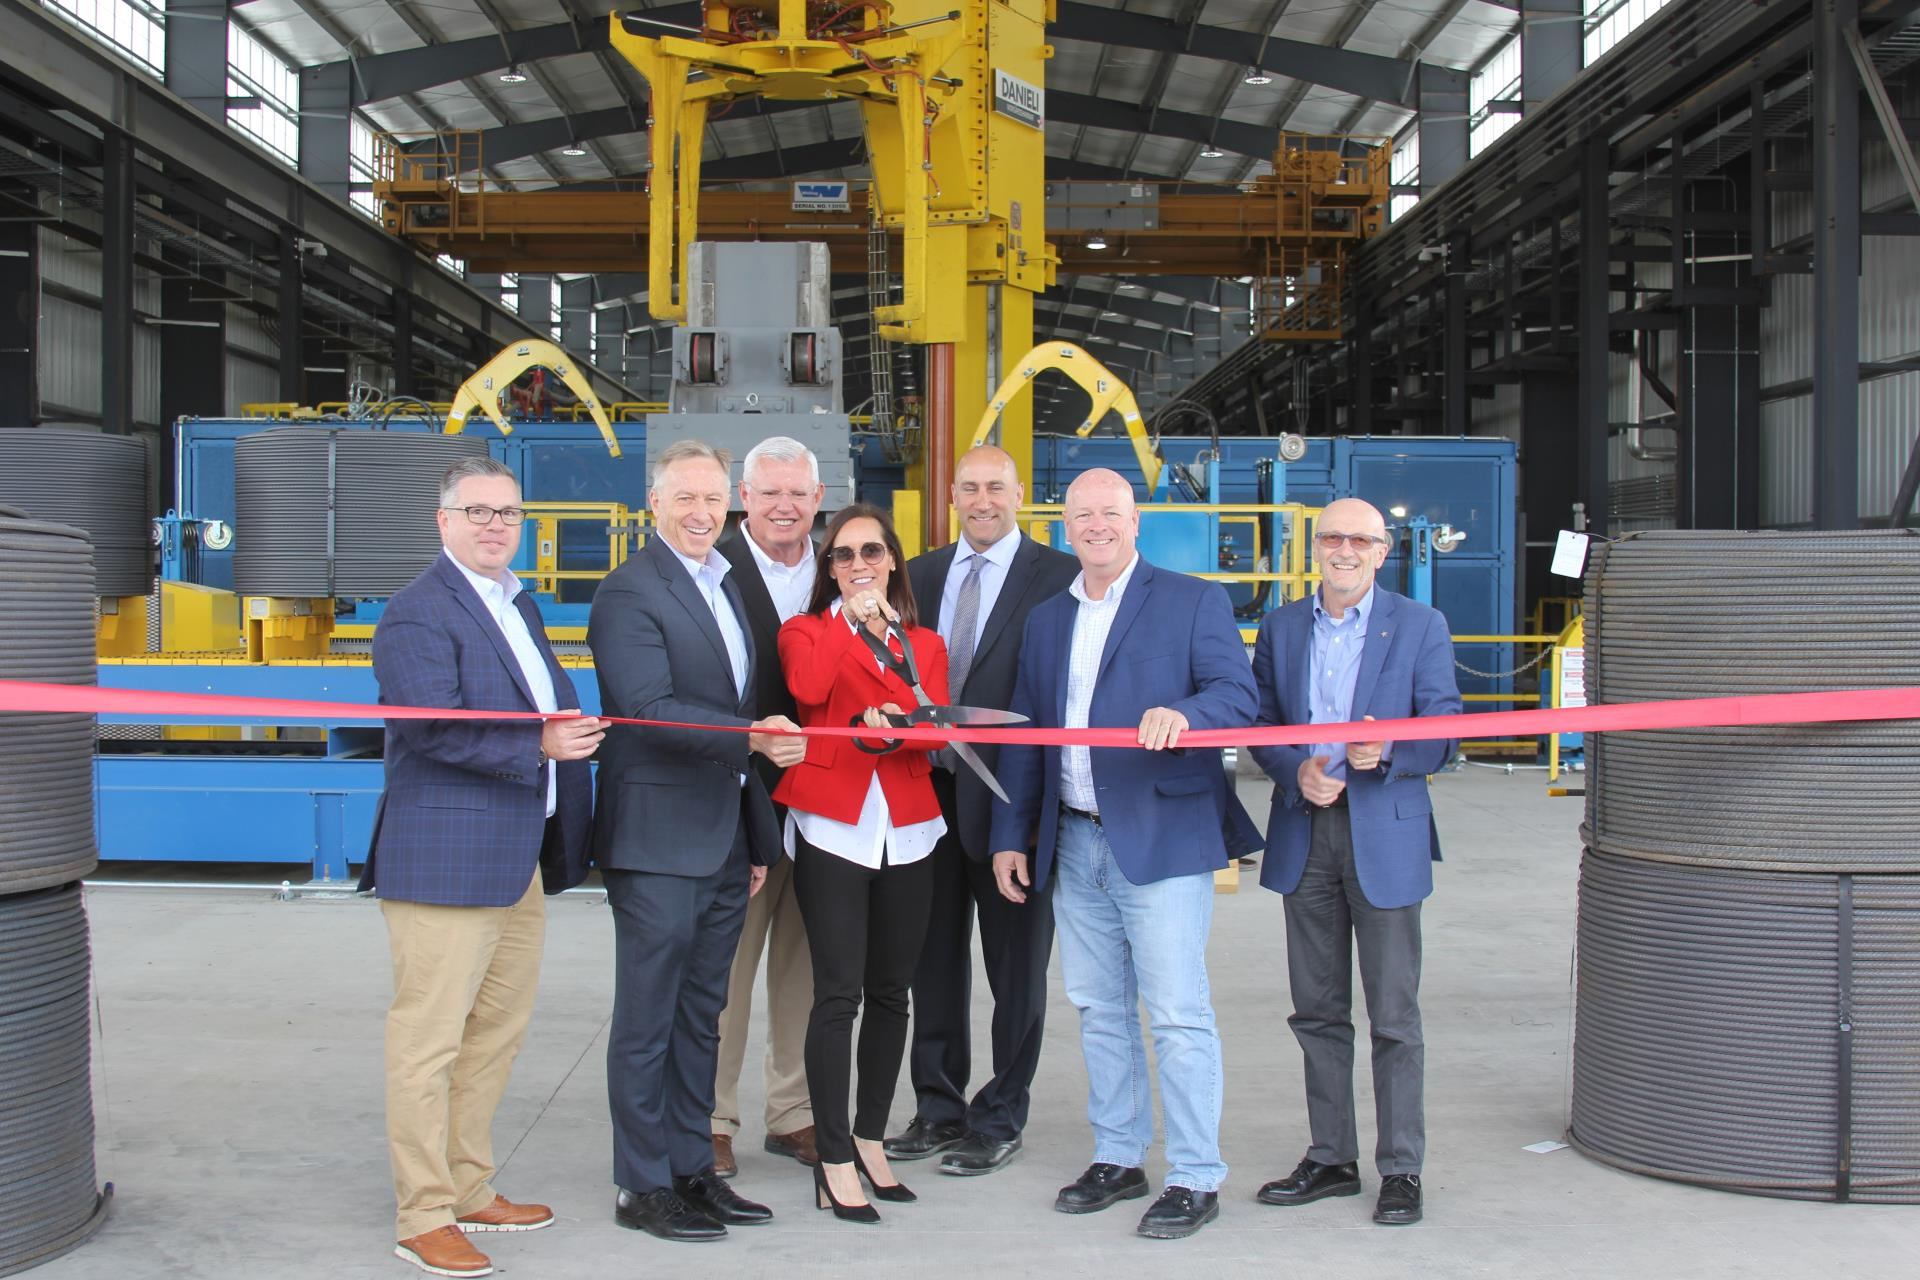 Commercial Metals Company grand opening for CMC Steel Arizona spooler expansion in Mesa